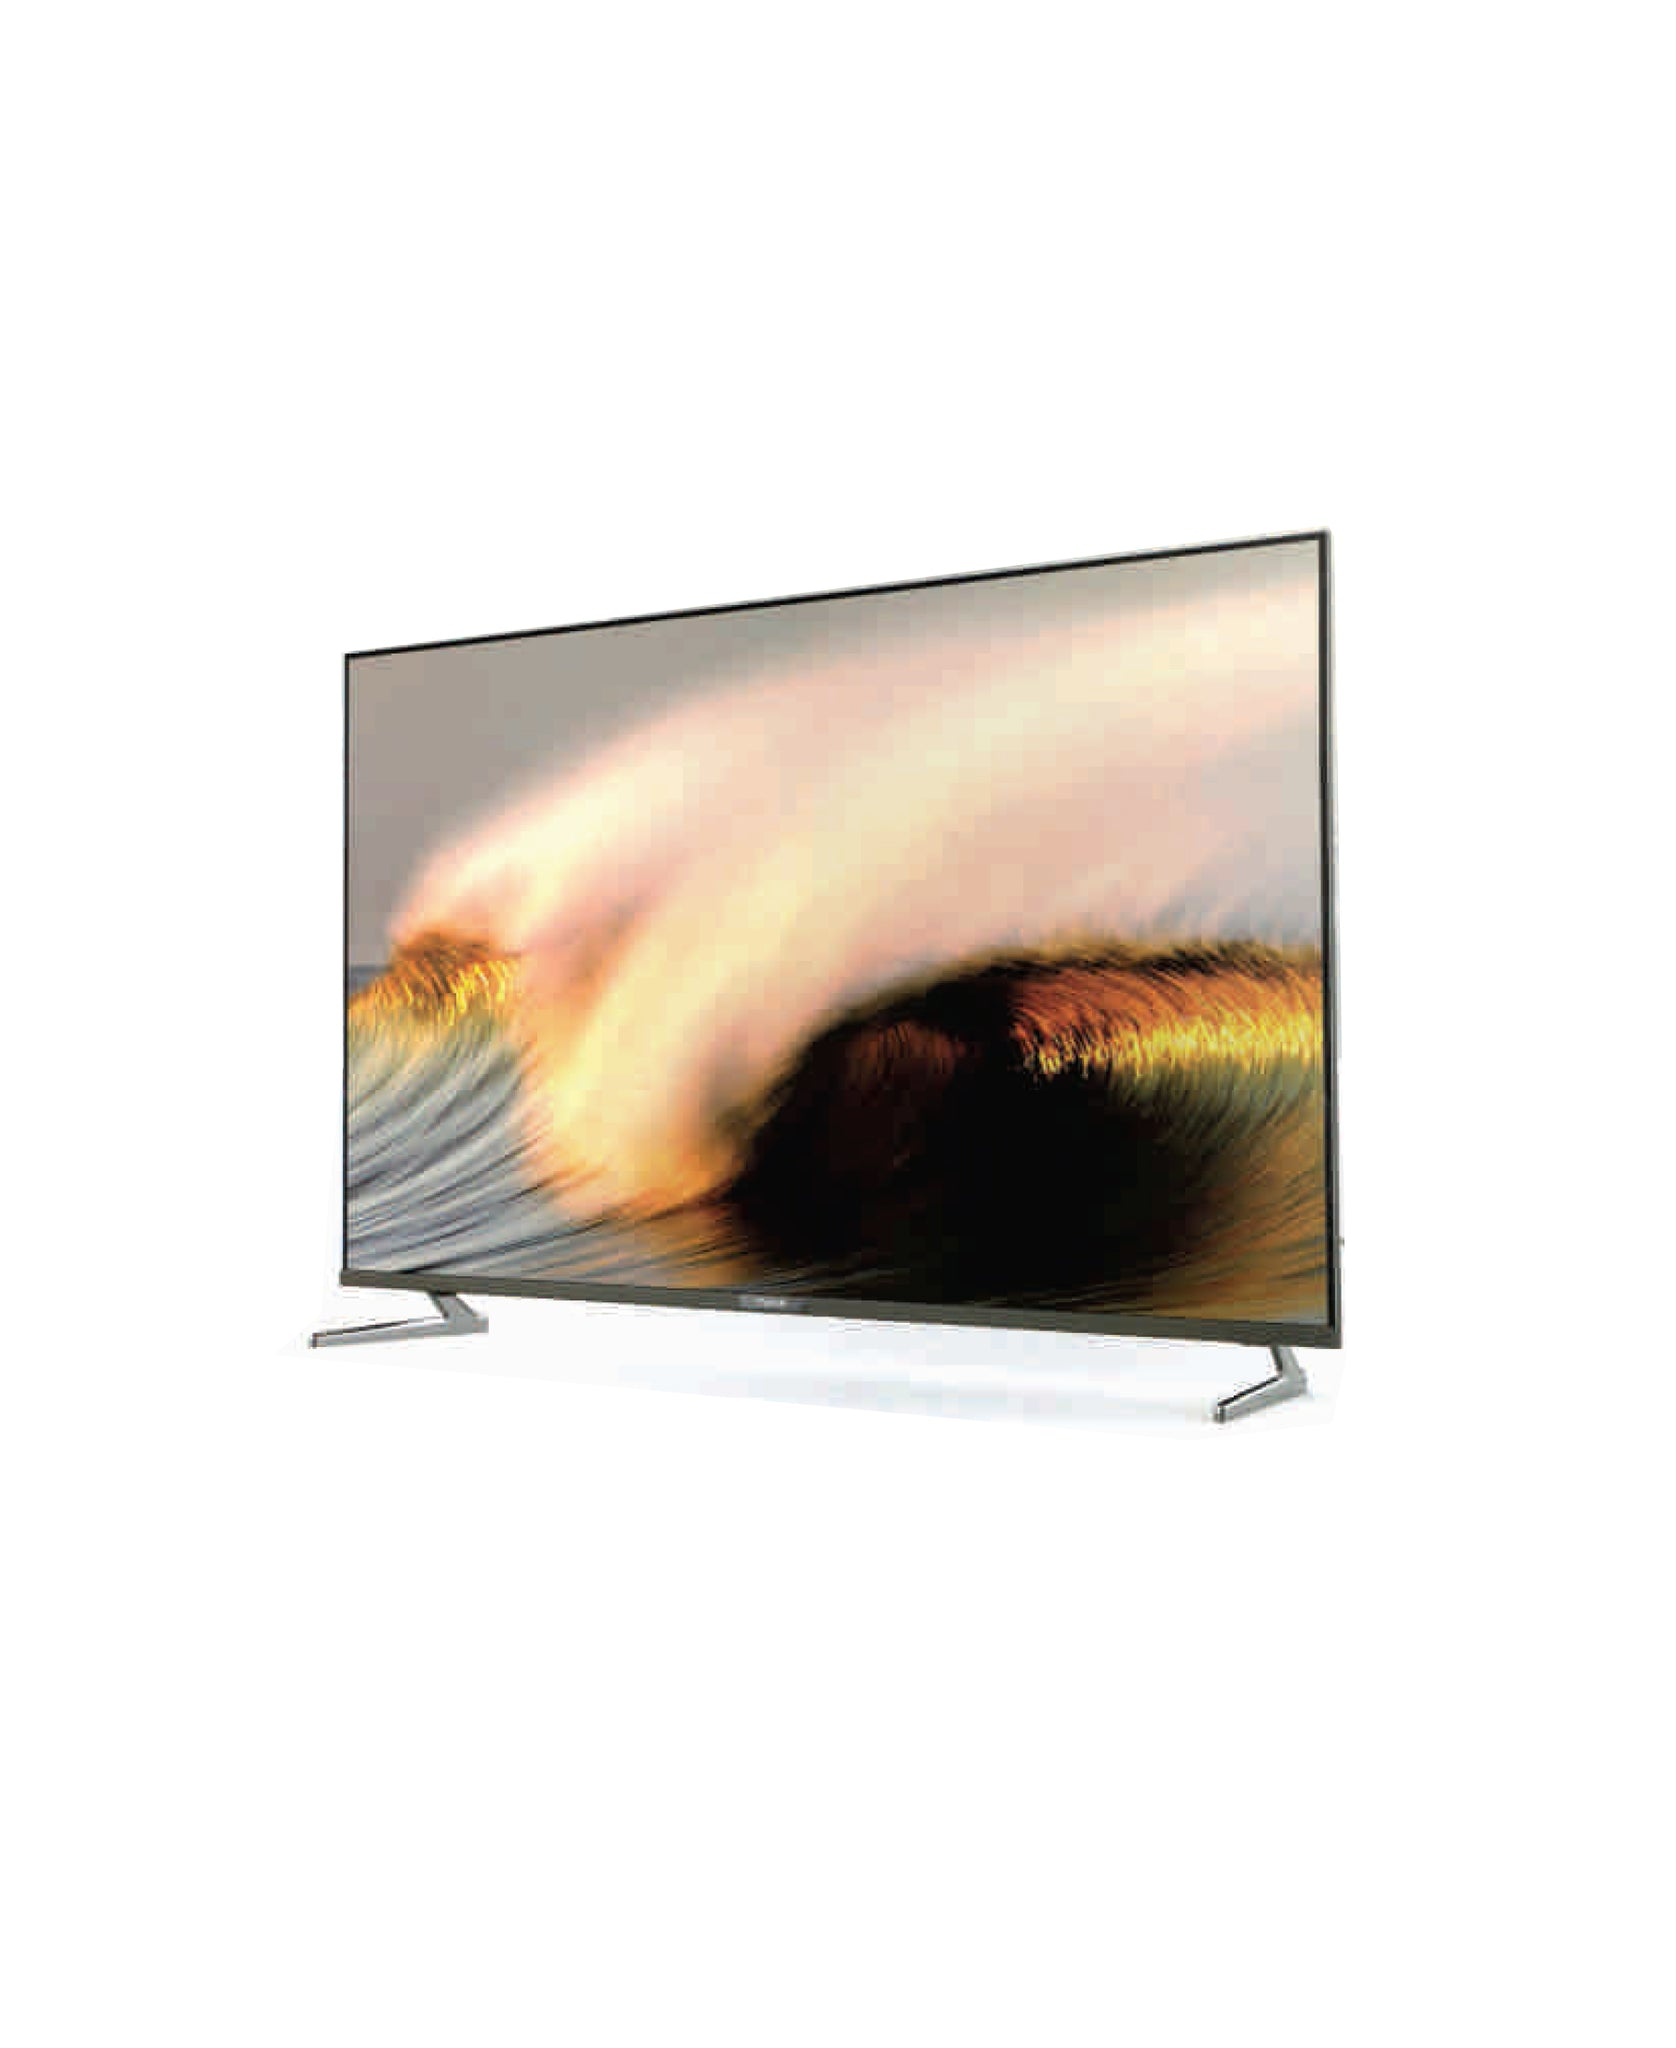 "JVC 32"" HD Edgeless LED TV LT-32N3100"